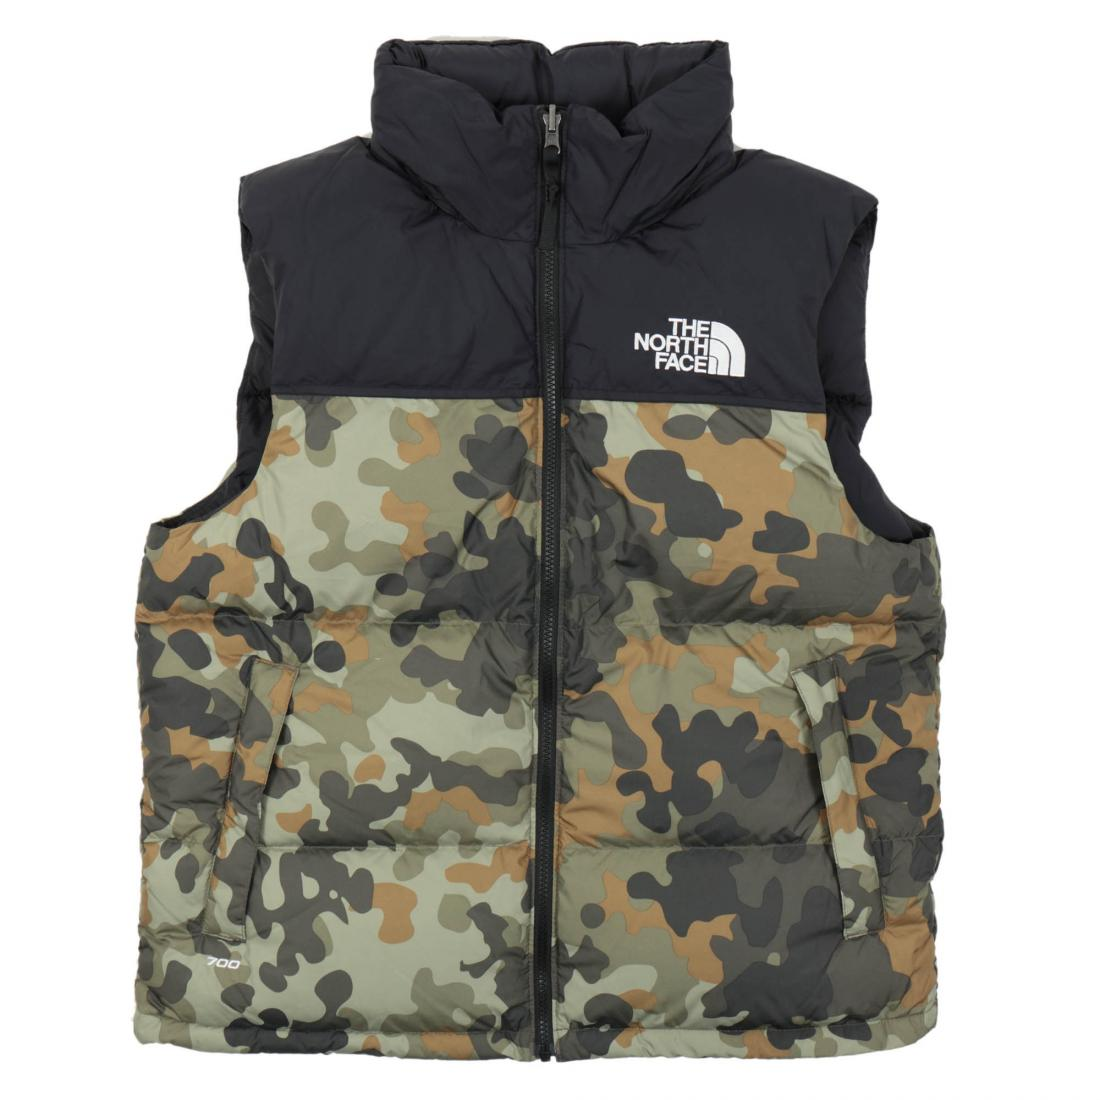 Жилет The North Face Nuptse 1996 купить в Boardshop №1